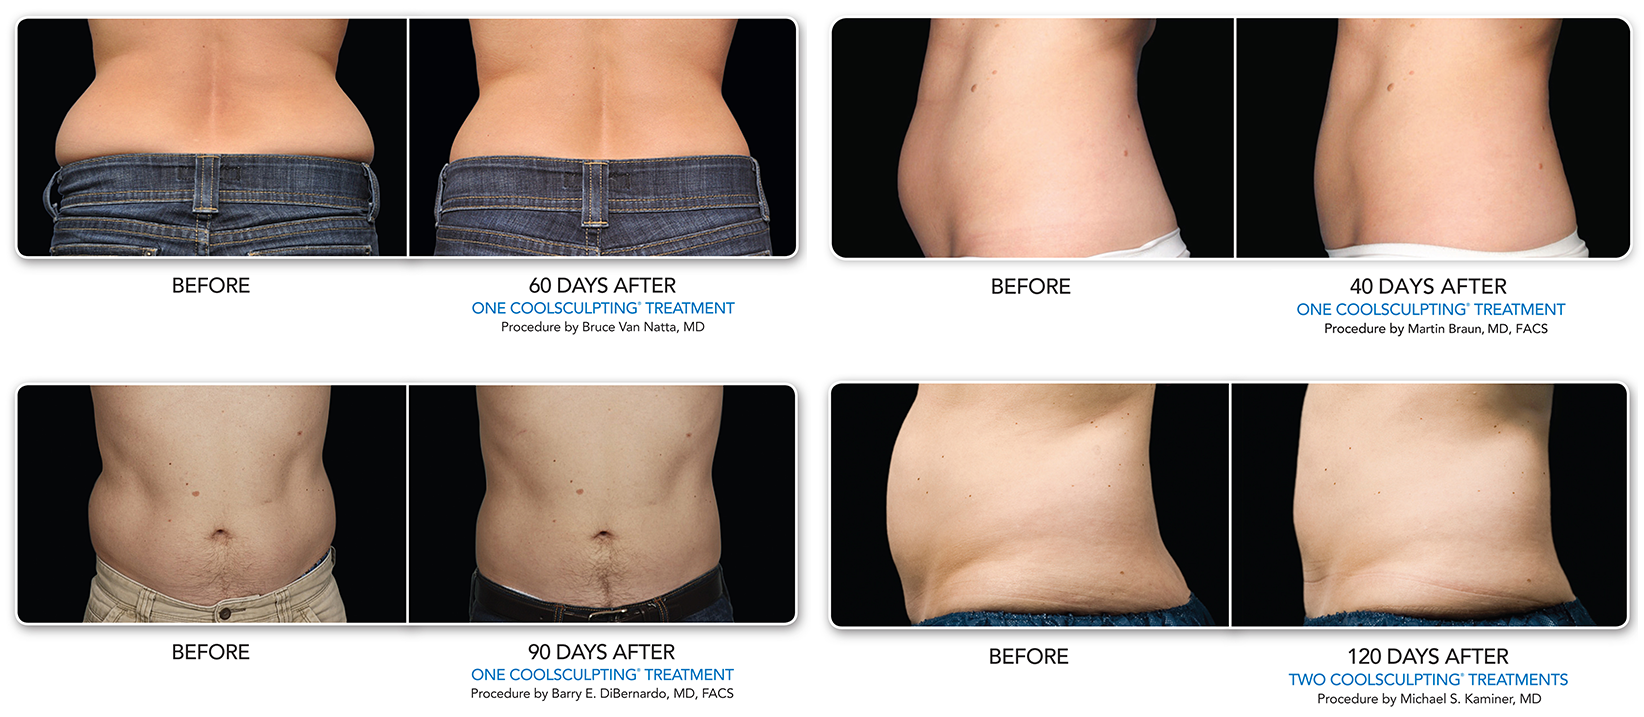 patient photos before and after coolsculpting procedure